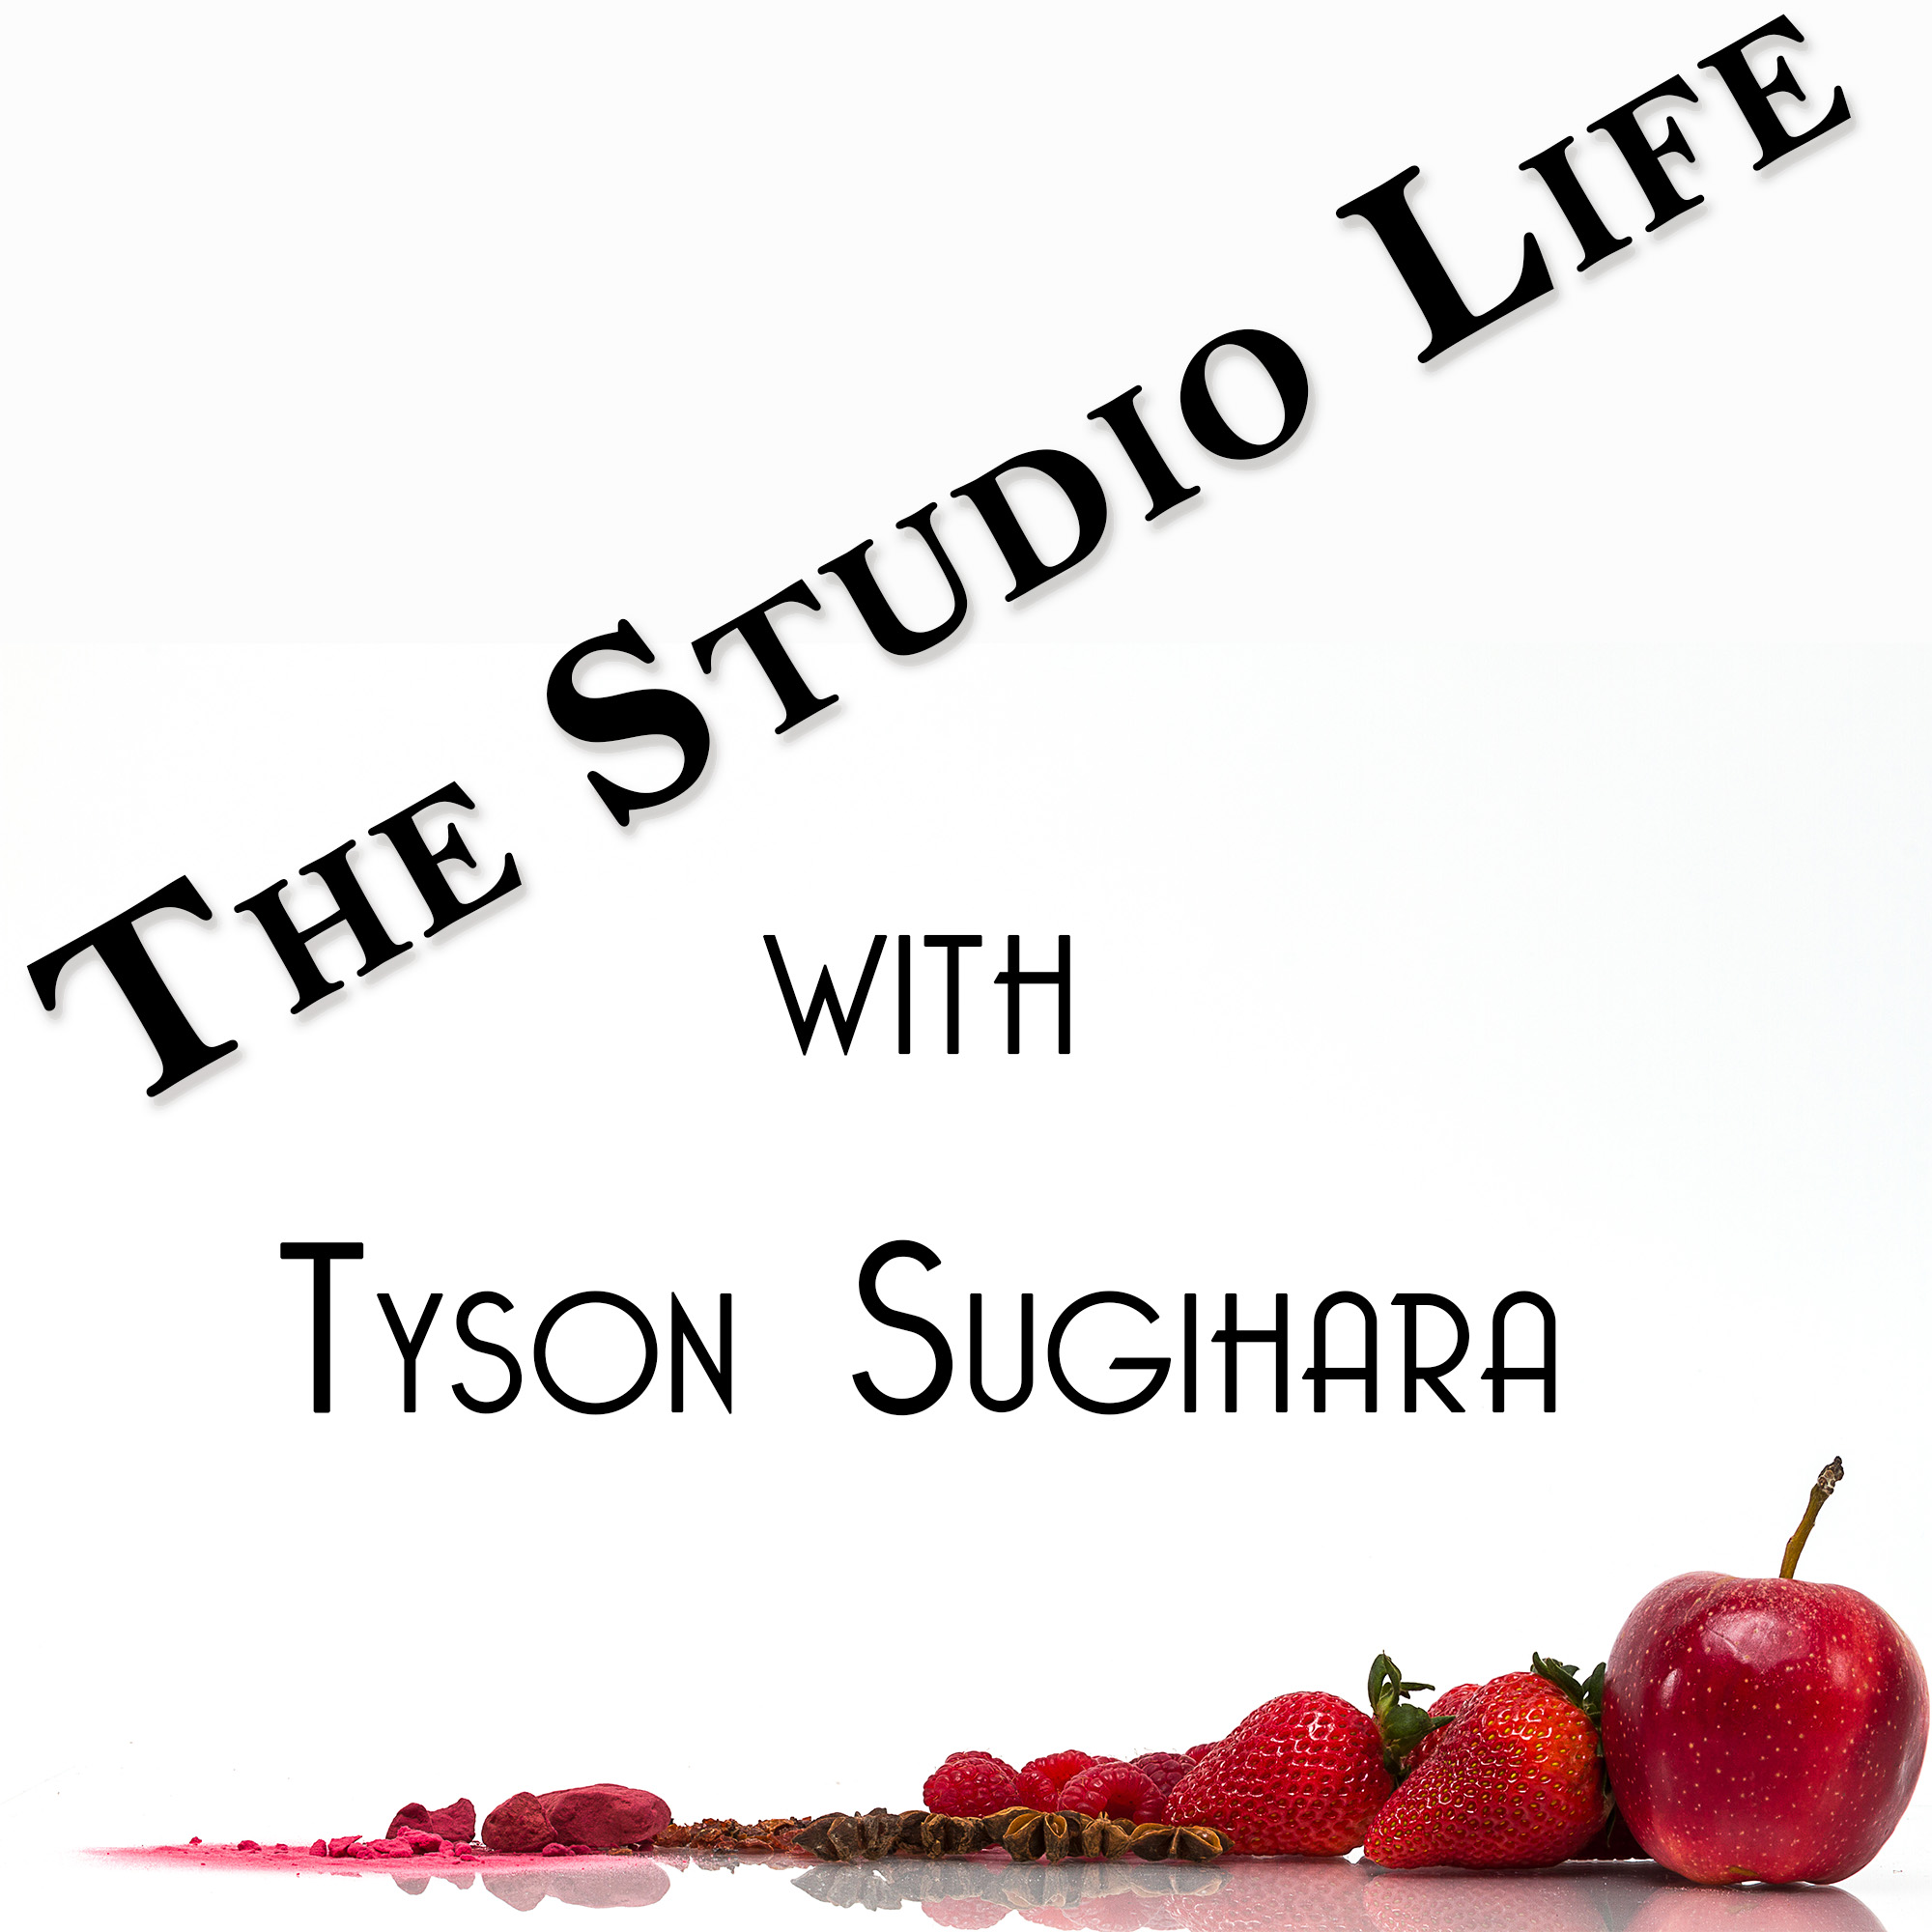 The Studio Life with Tyson Sugihara